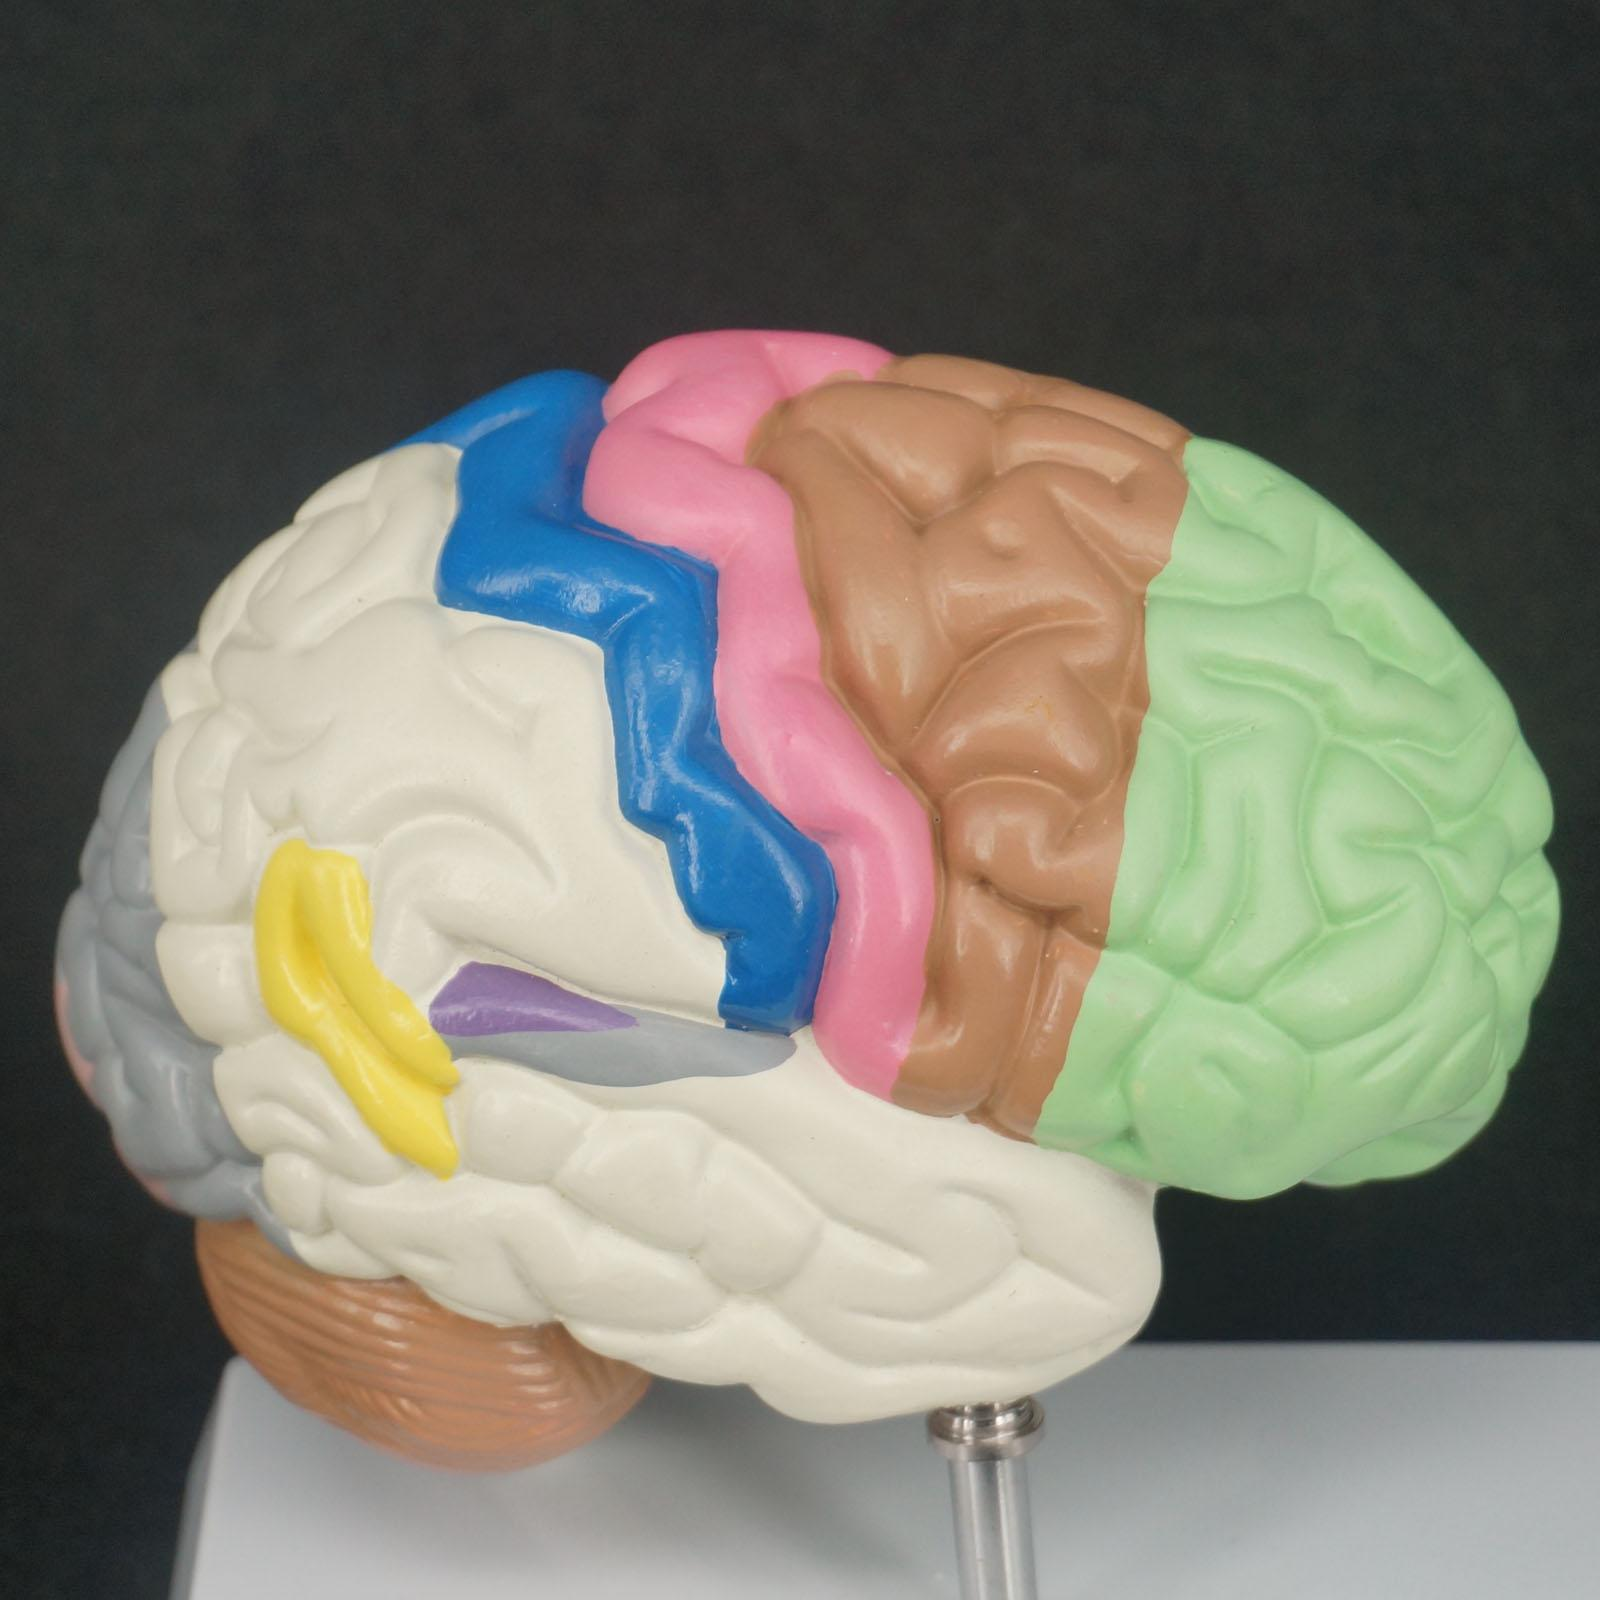 Color Human Brain Domain Anatomy Anatomical Model Right Brain Medical Function Educational Supplies Teaching Resources